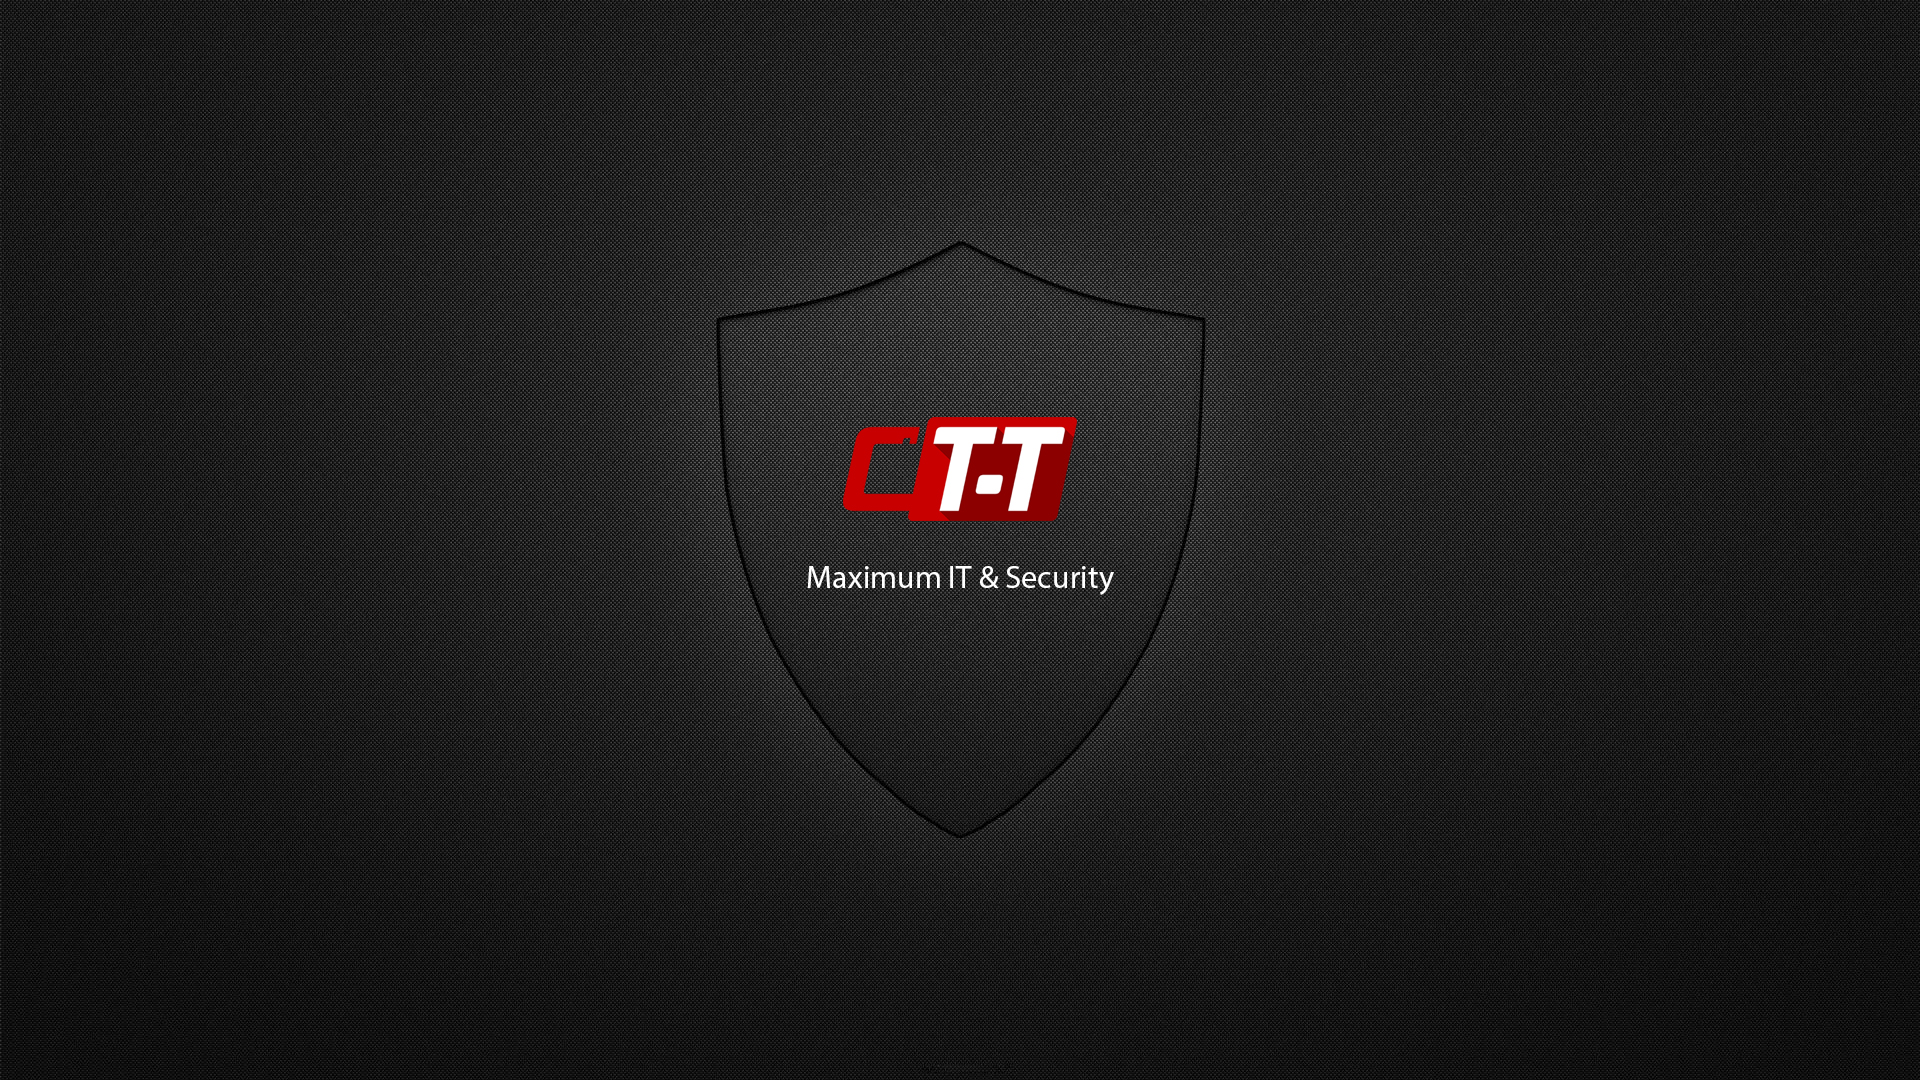 CT-T Security